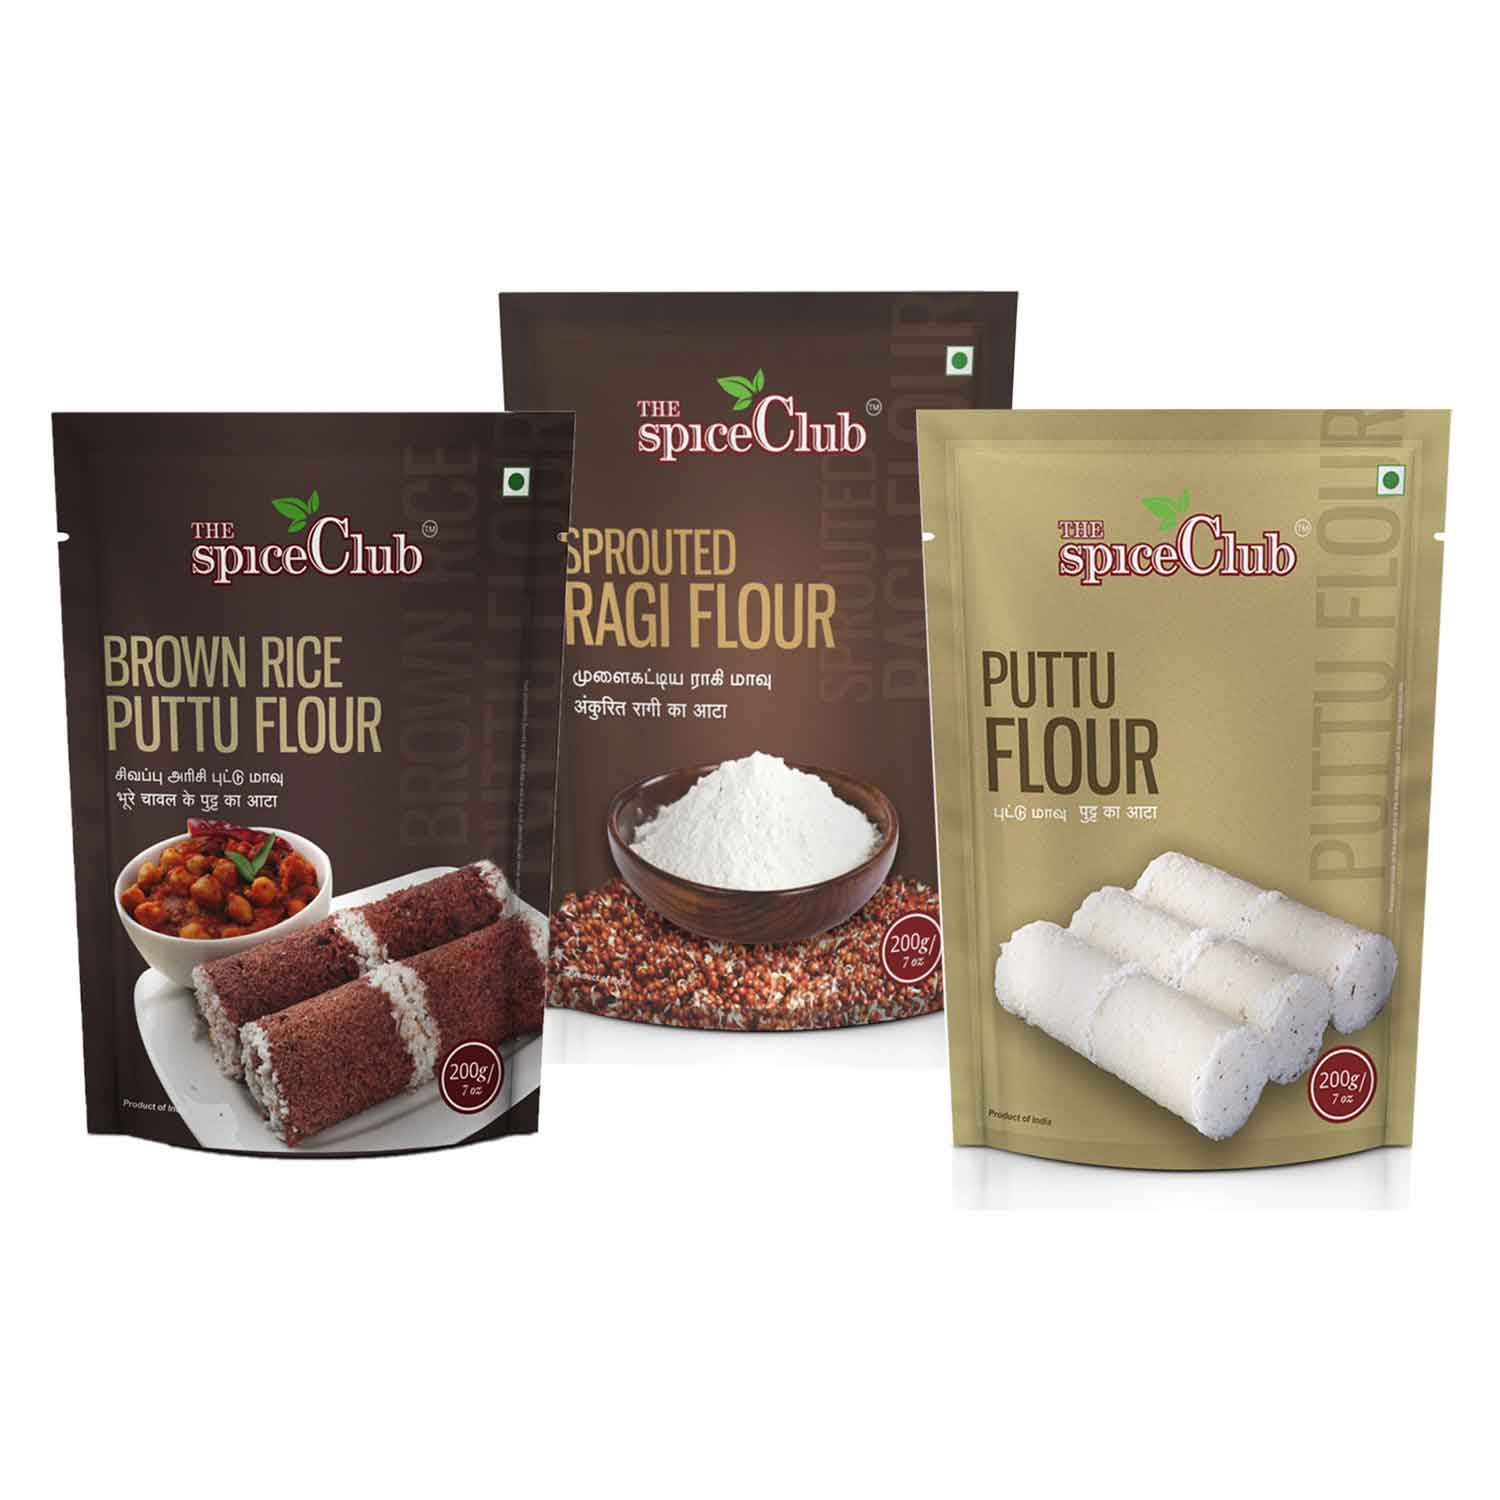 Brown Rice Puttu Flour 200g + Sprouted Ragi Flour 200g + Puttu Flour 200g